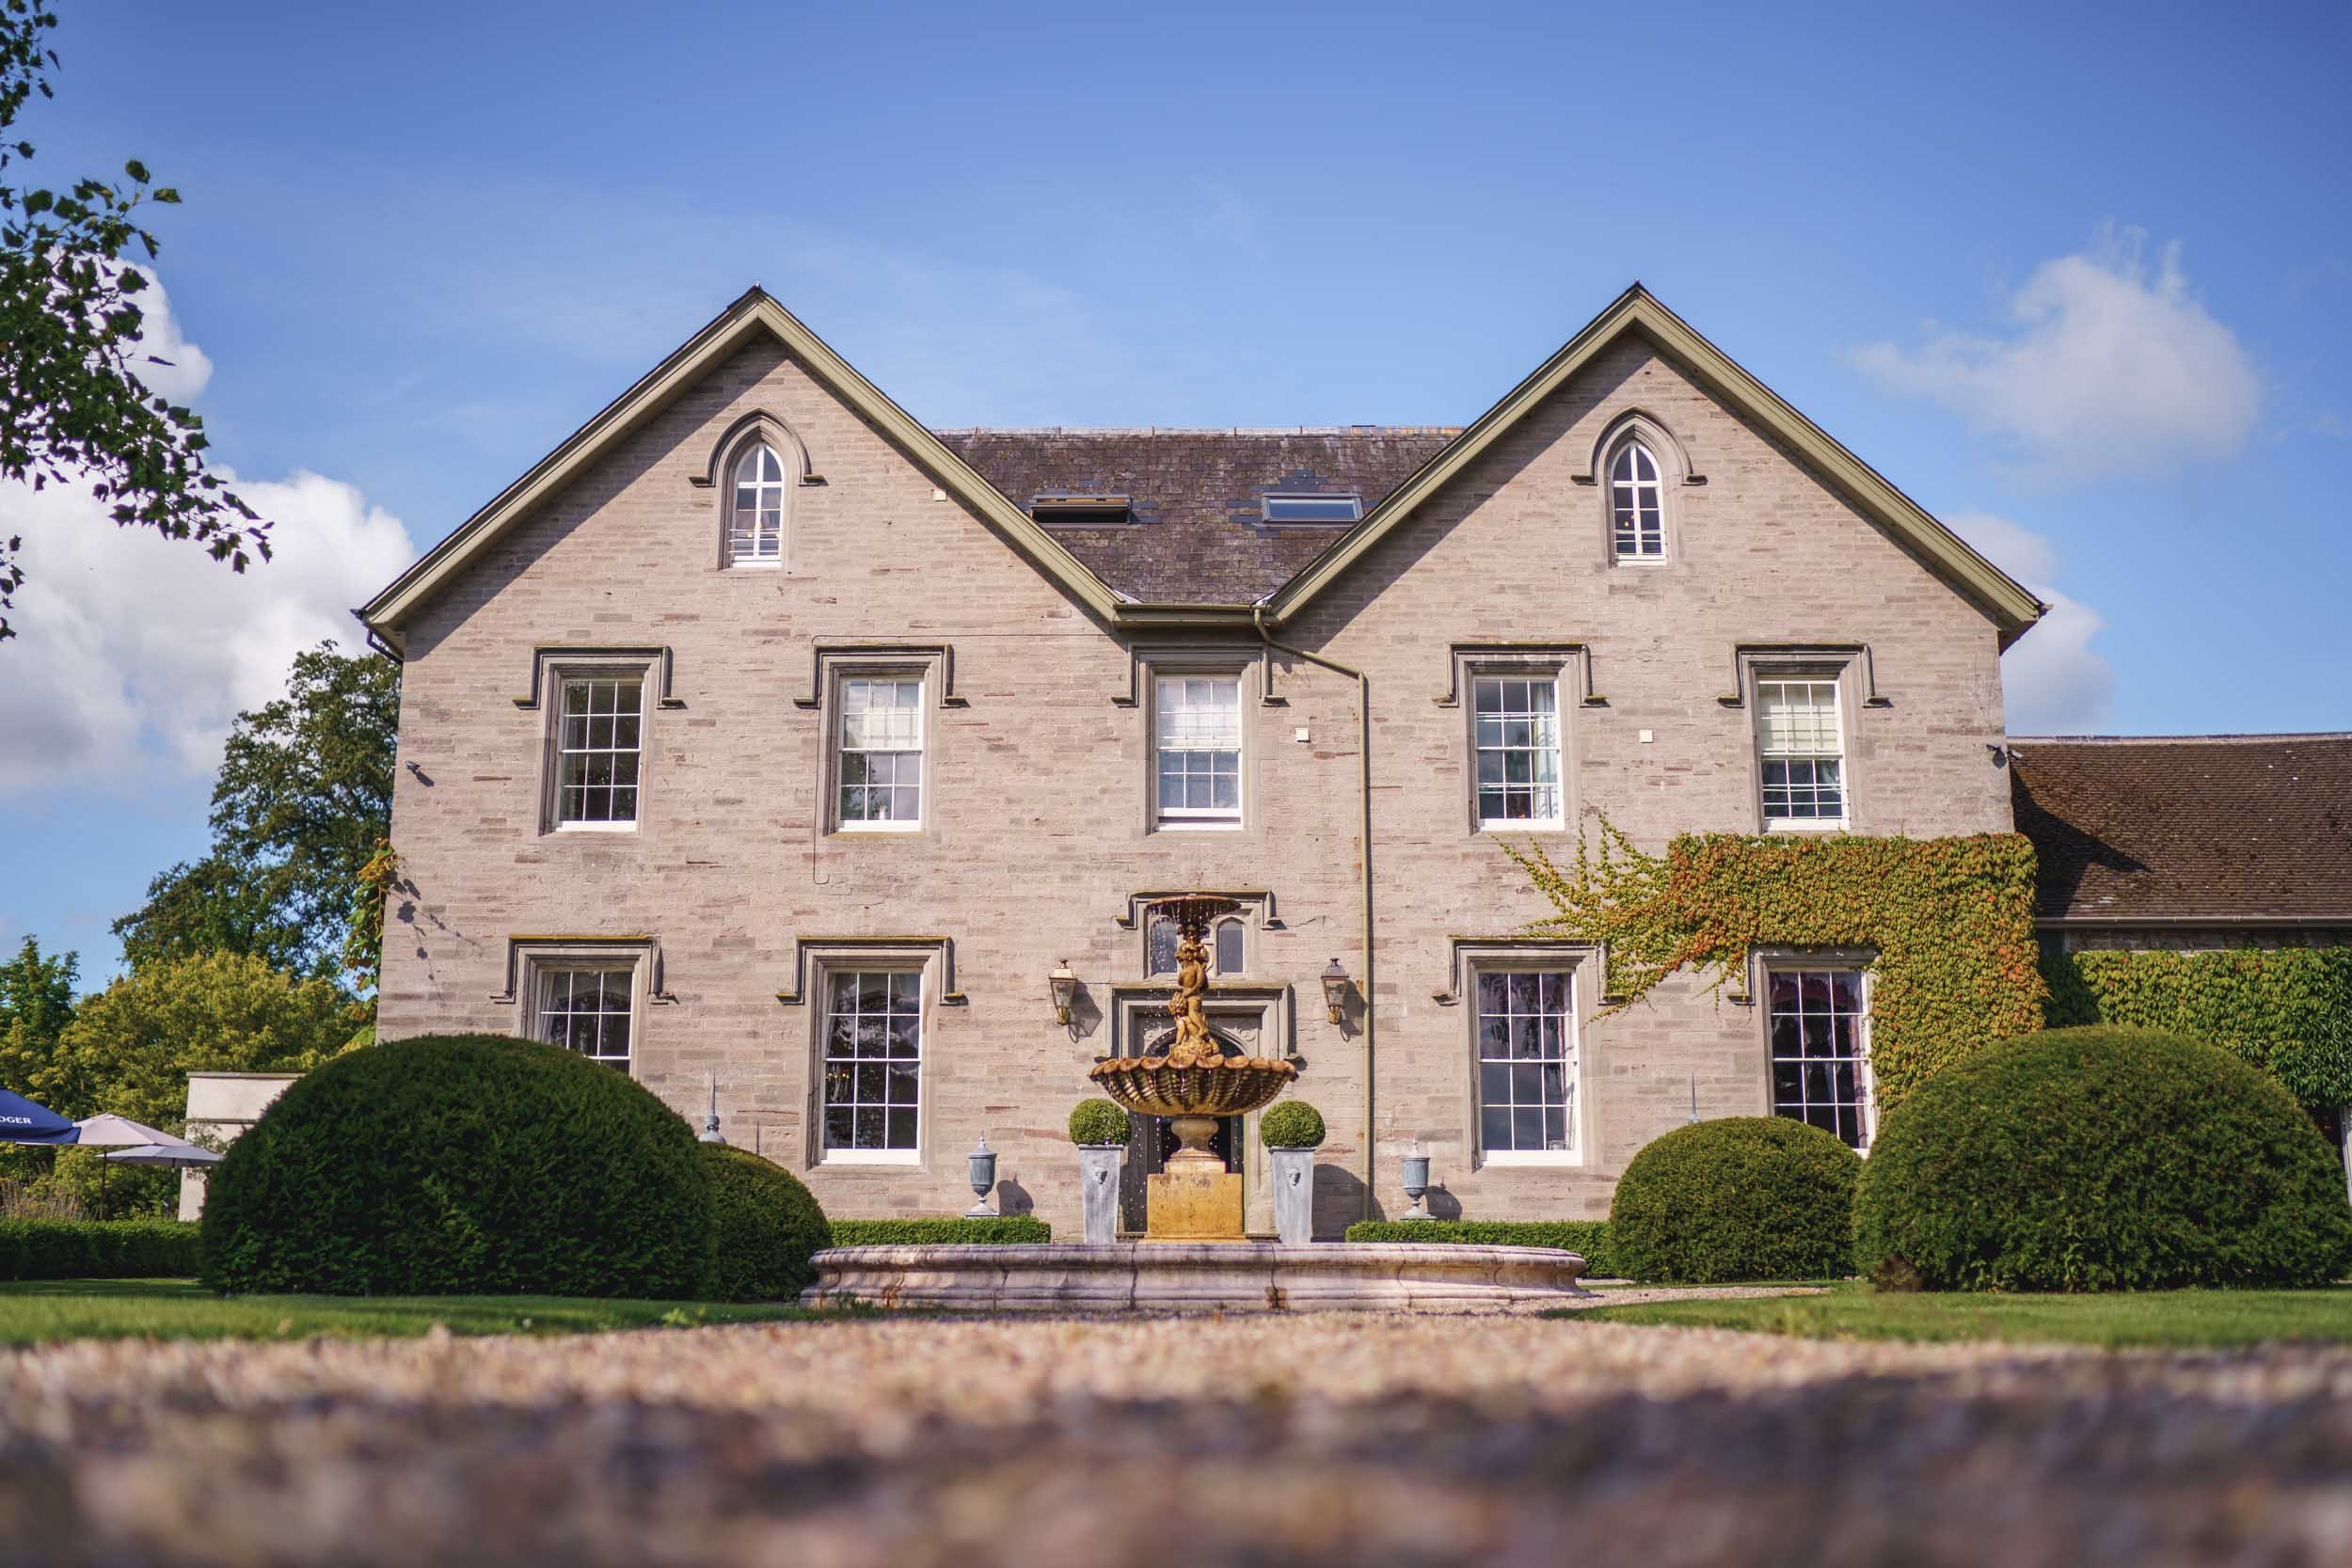 Lemore Manor Wedding Photographer, Wedding venue in Herefordshire, Lemore Manor Weddings, Lemore, Manor, Wedding, photography